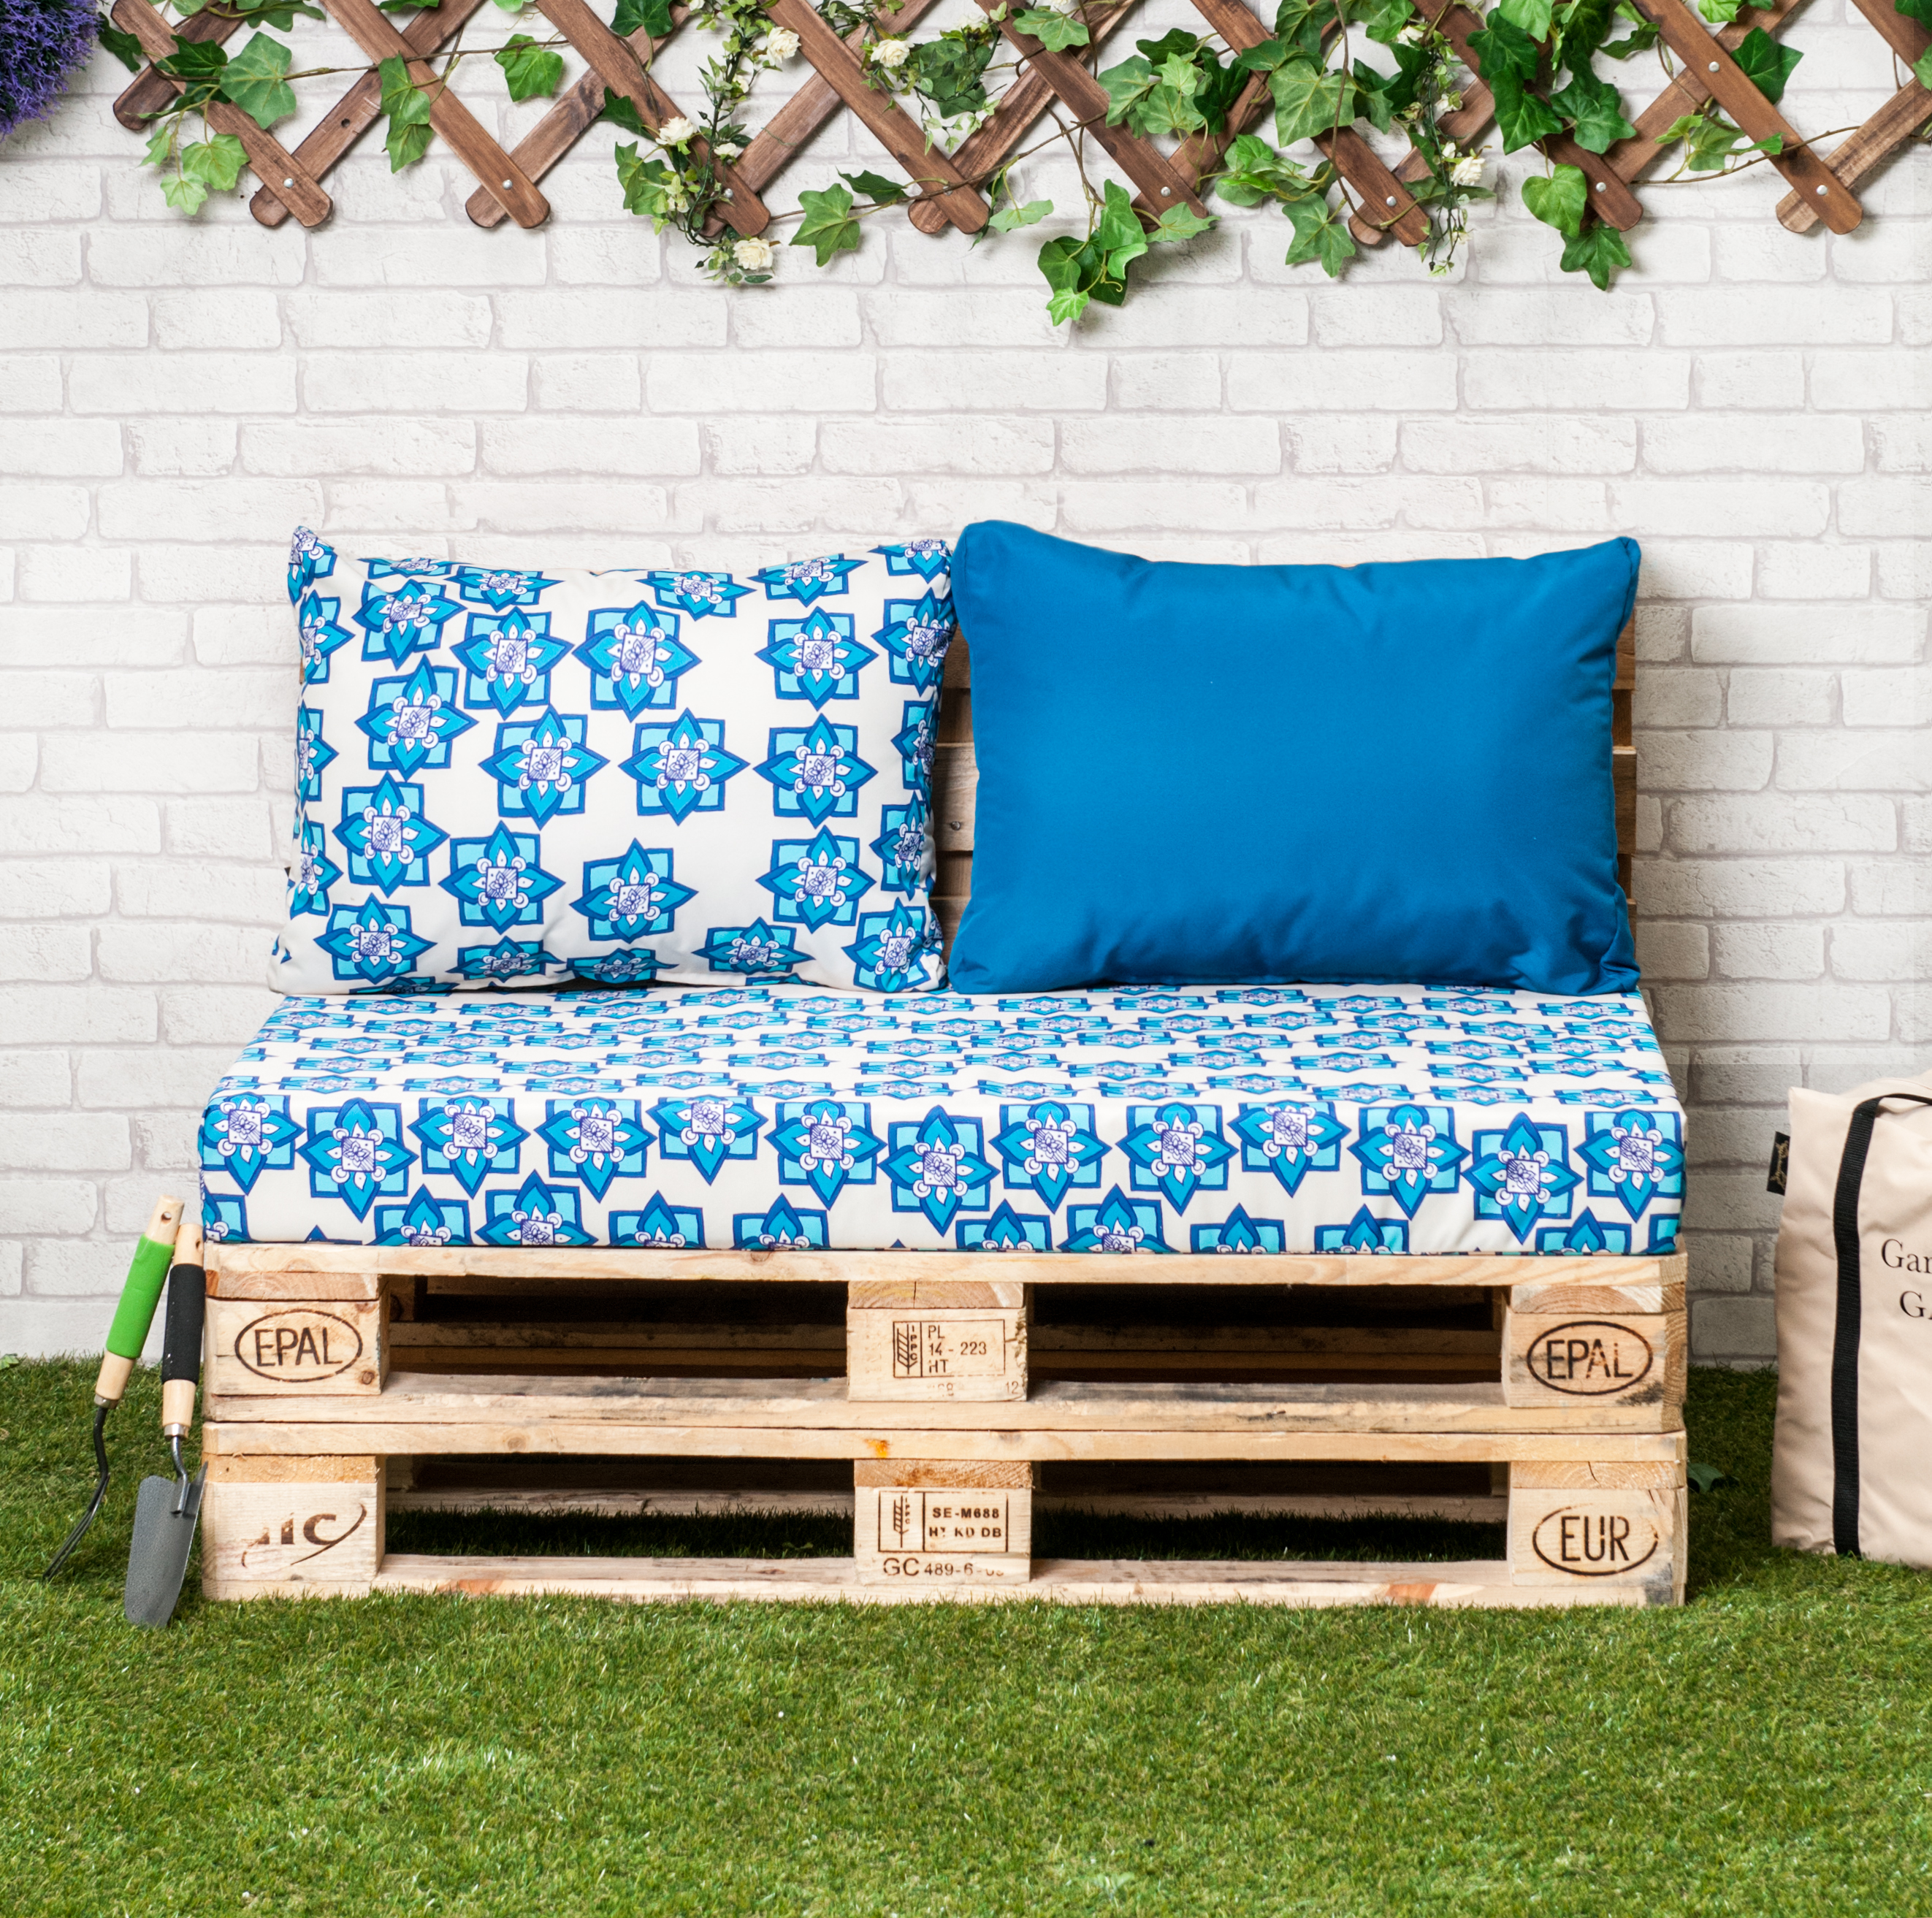 Outdoor Patio Furniture Dimensions: Designer Prints Euro Pallet Seating Cushion Pads Garden